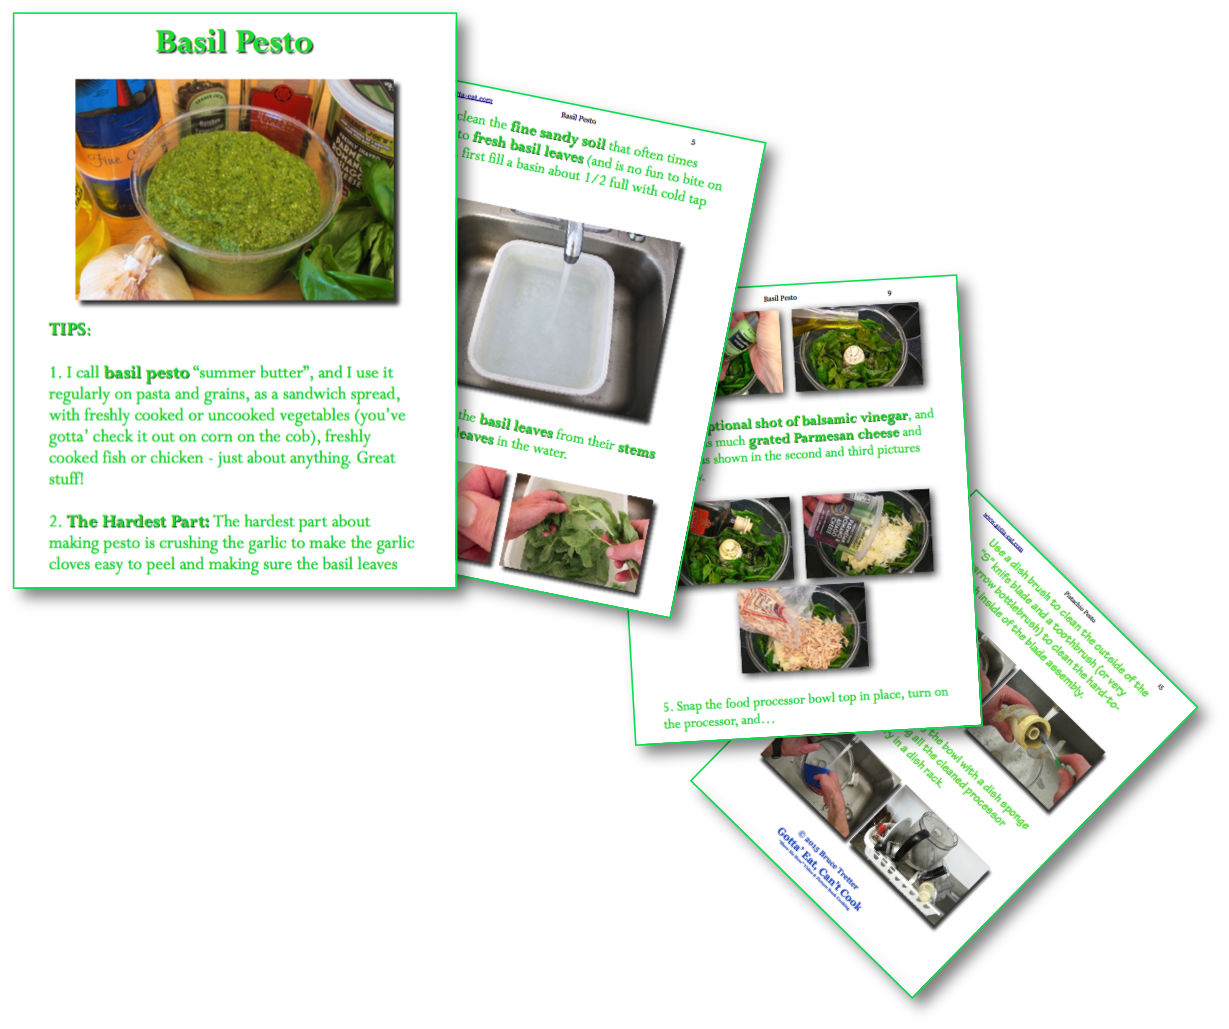 Basil Pesto Picture Book Recipe